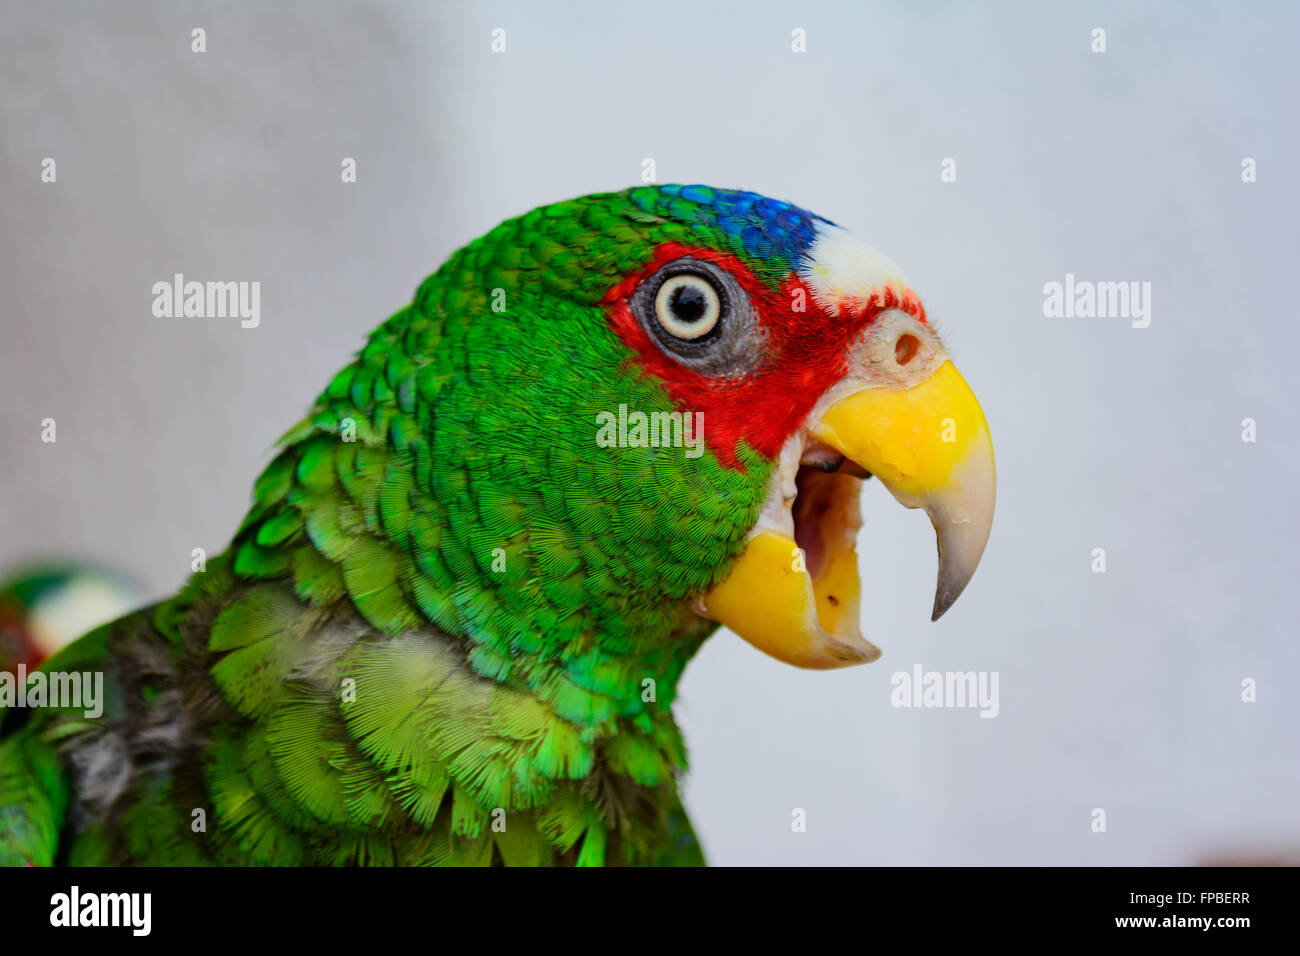 Parrot, White-fronted Amazon Parrot, Amazona albifrons, Spectacled Amazon or White-fronted Parrot, Copy space - Stock Image